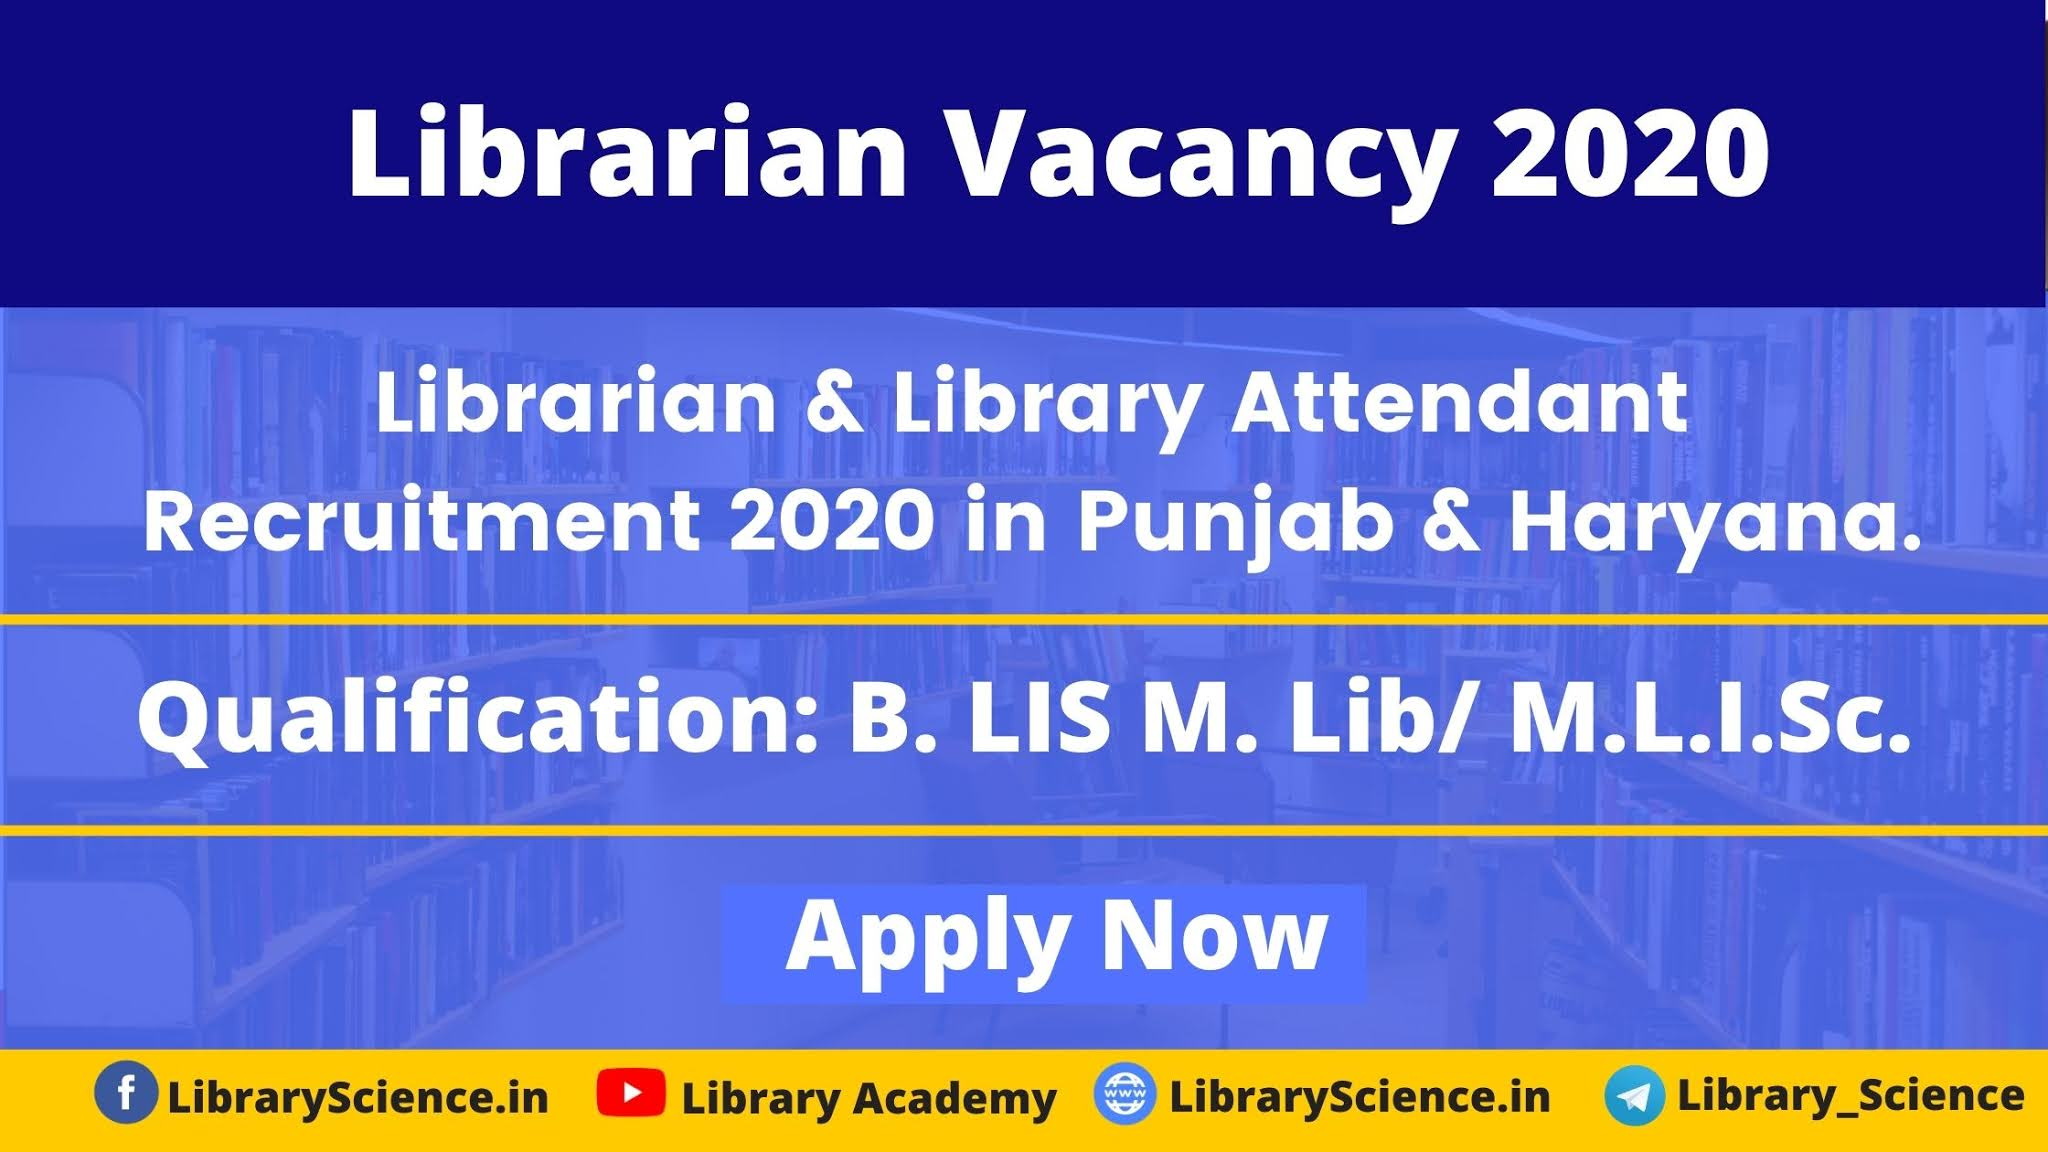 Library Vacancy 2020 in Punjab